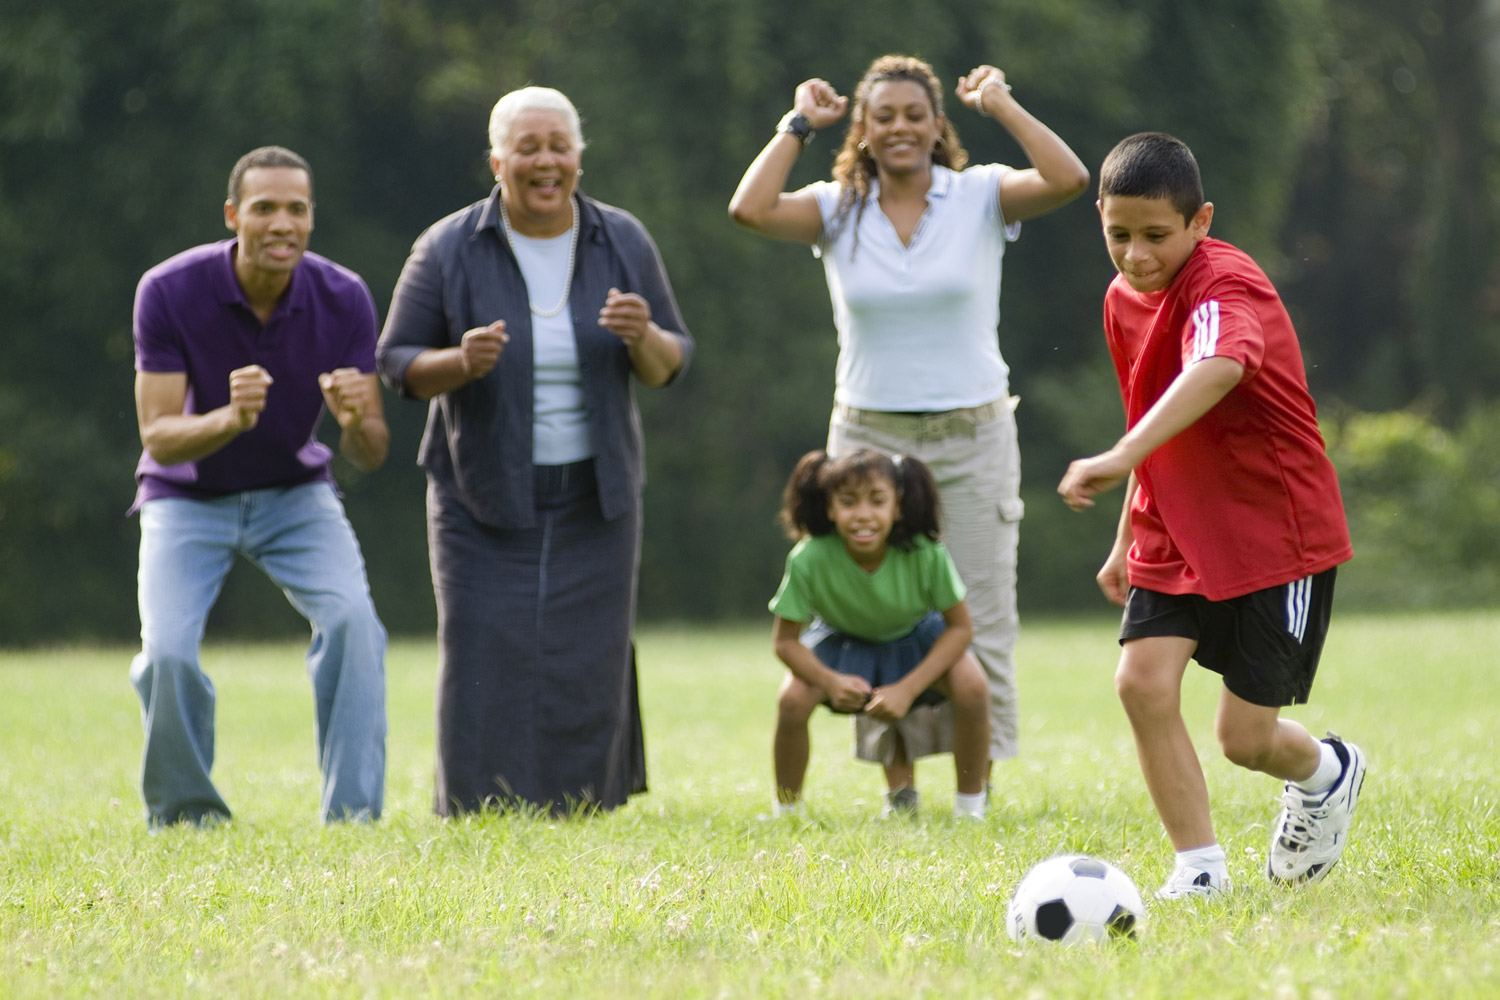 encourage your kids when playing physical activities